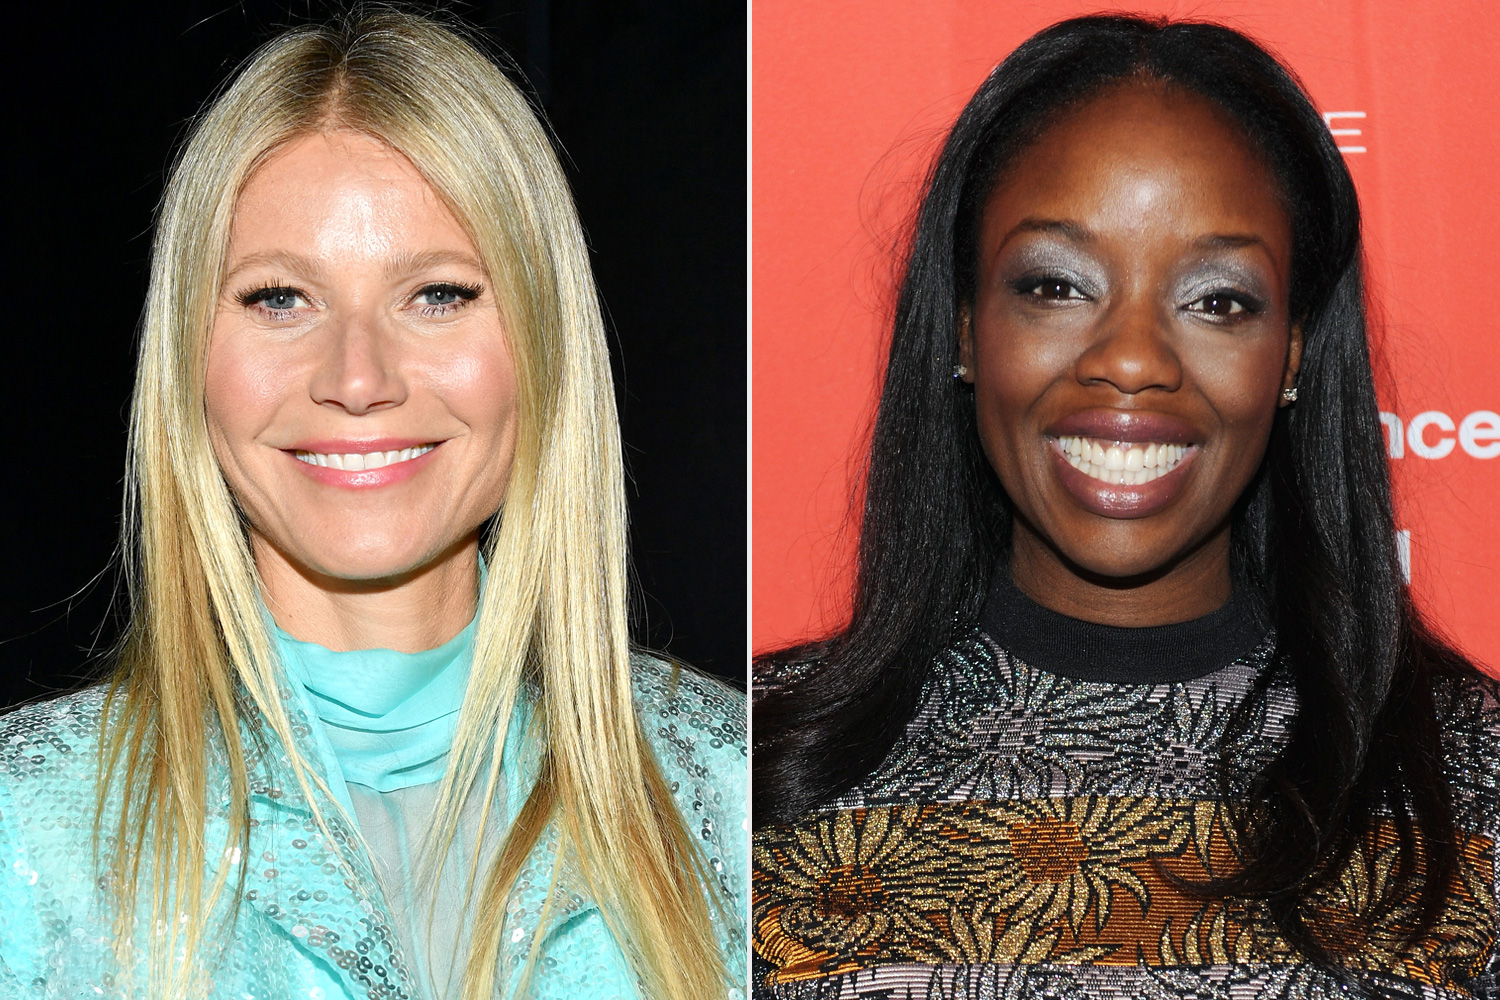 Gwyneth Paltrow's interview with Dr. Nadine Burke Harris, the first Surgeon General of California